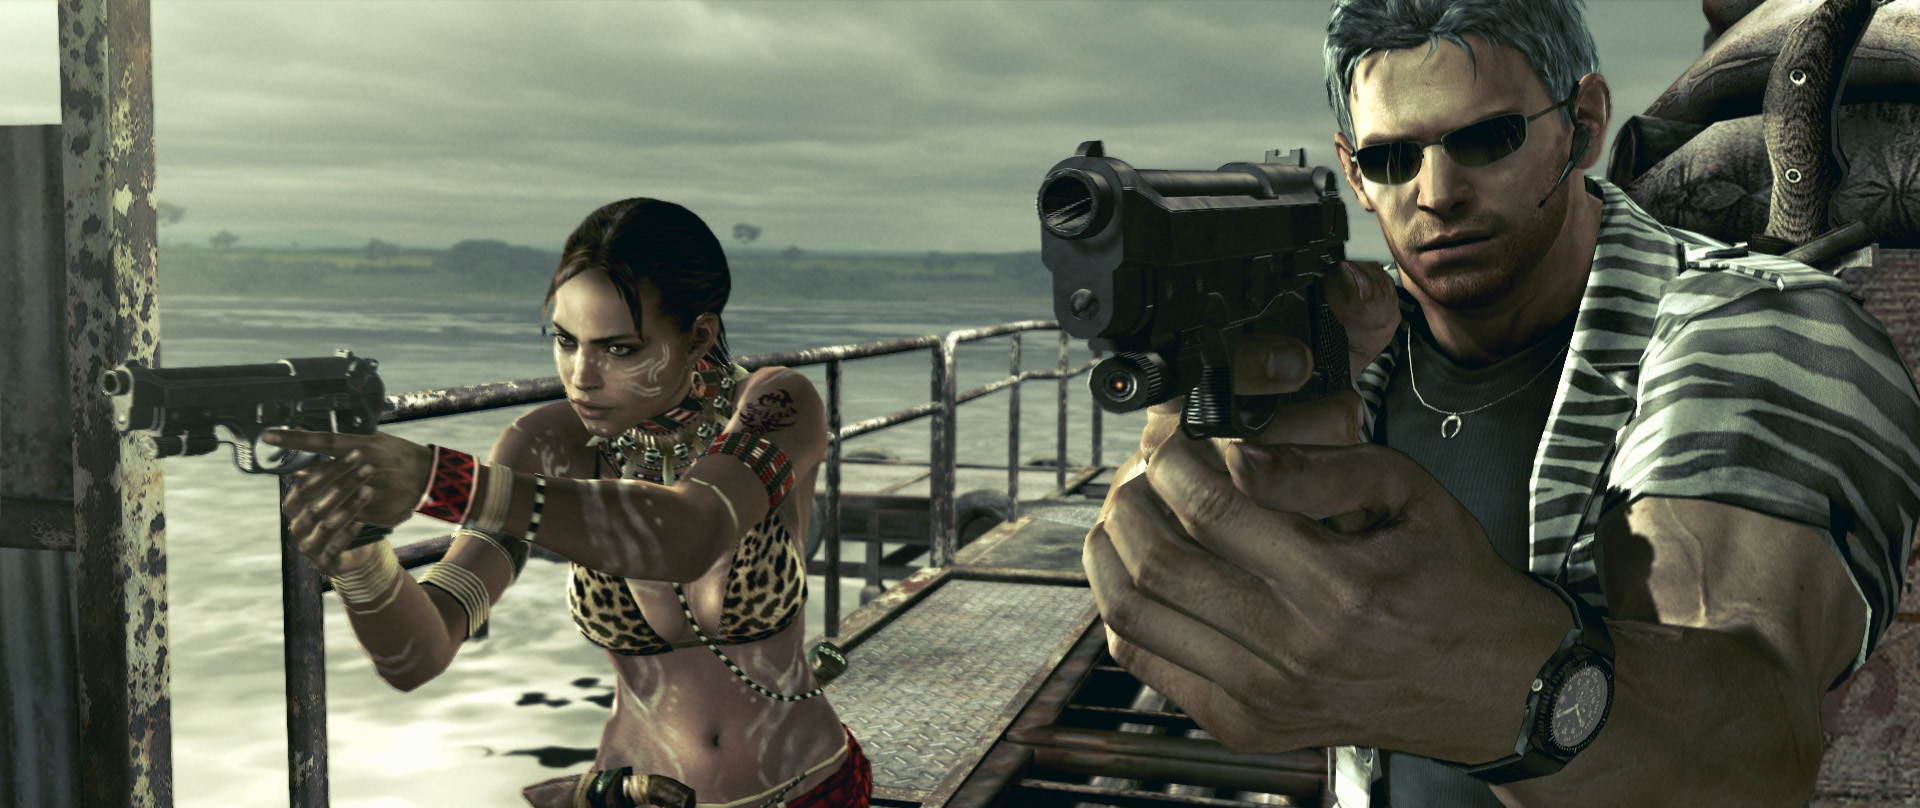 Super Adventures in Gaming: Resident Evil 5 (PC) - Part 2